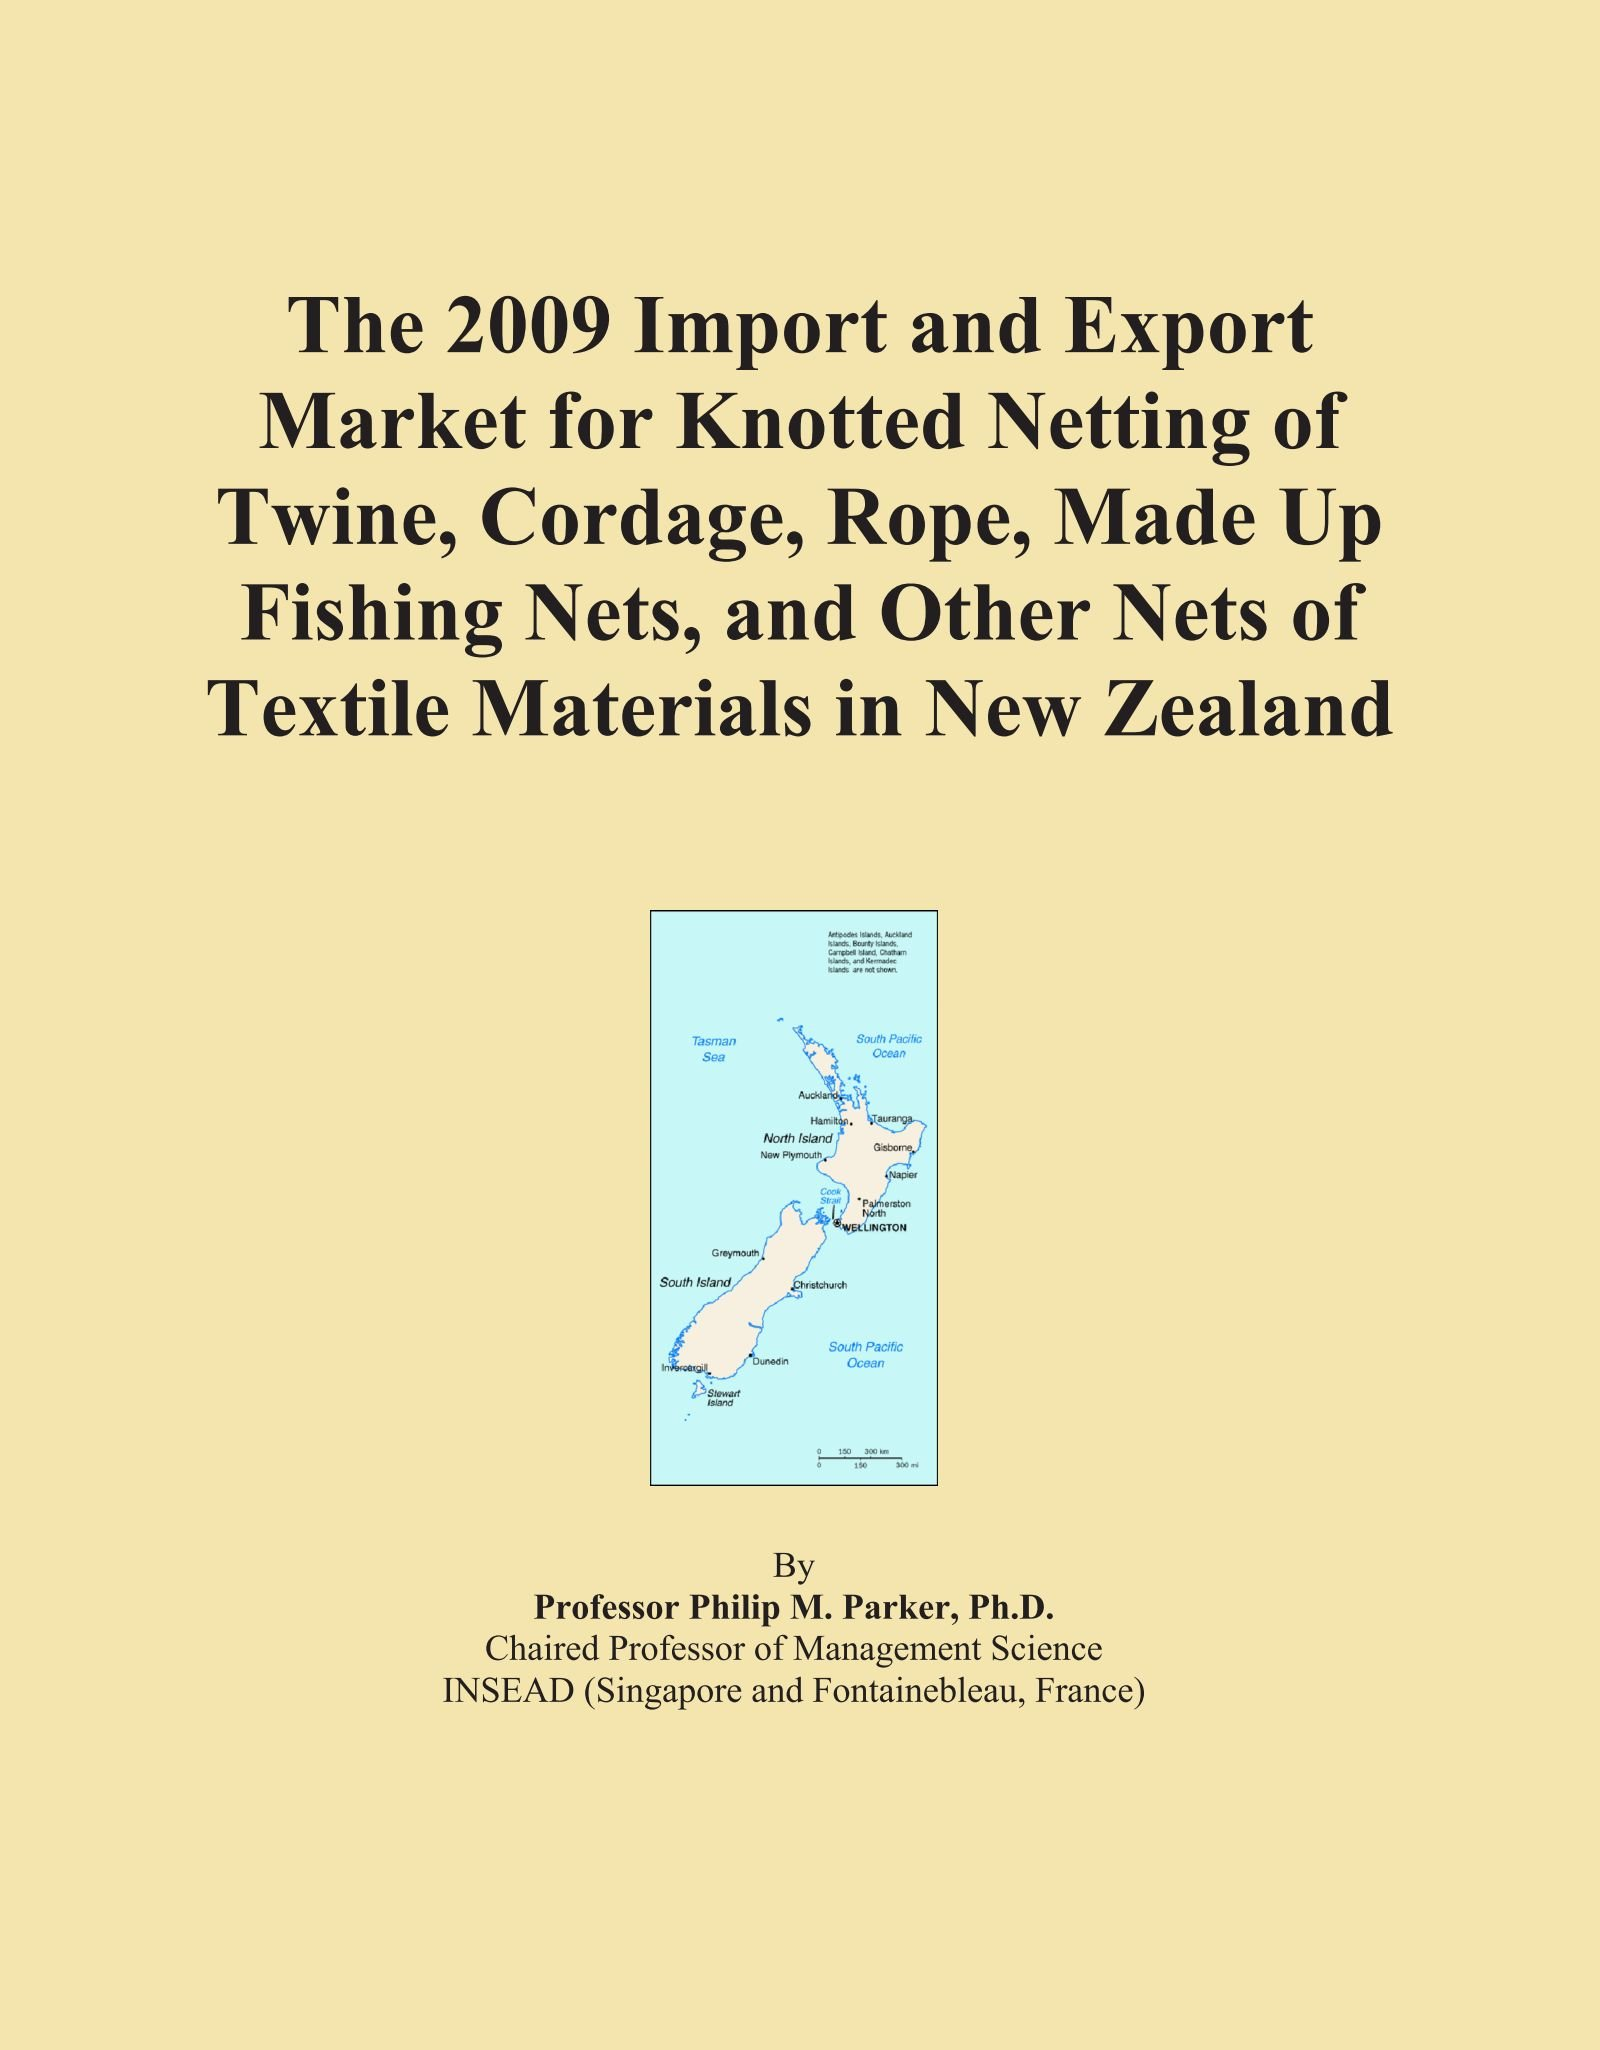 Download The 2009 Import and Export Market for Knotted Netting of Twine, Cordage, Rope, Made Up Fishing Nets, and Other Nets of Textile Materials in New Zealand pdf